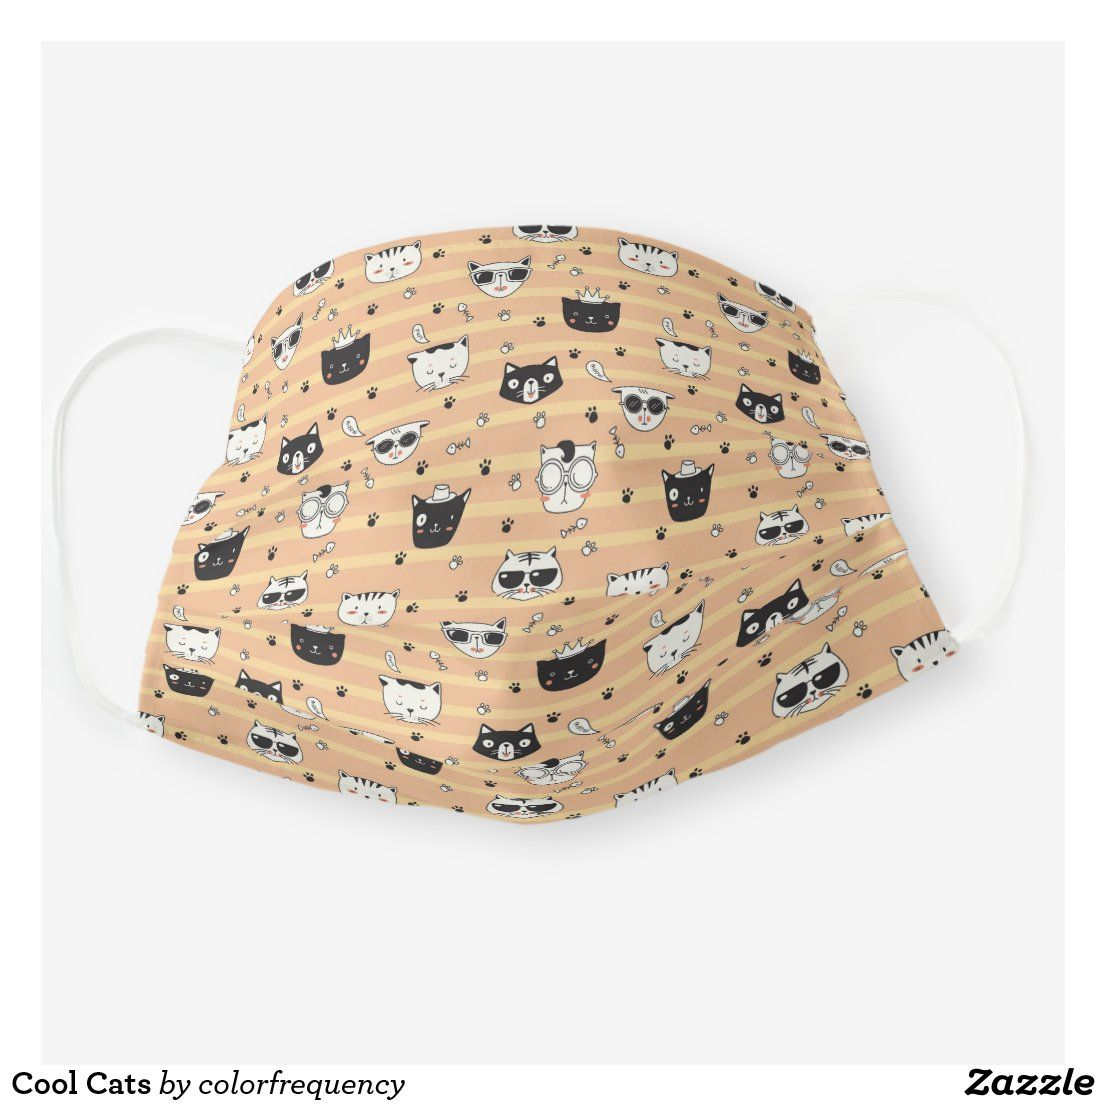 Cool Cats Cloth Face Mask Zazzle Com In 2020 Cool Cats Face Mask Mask For Kids